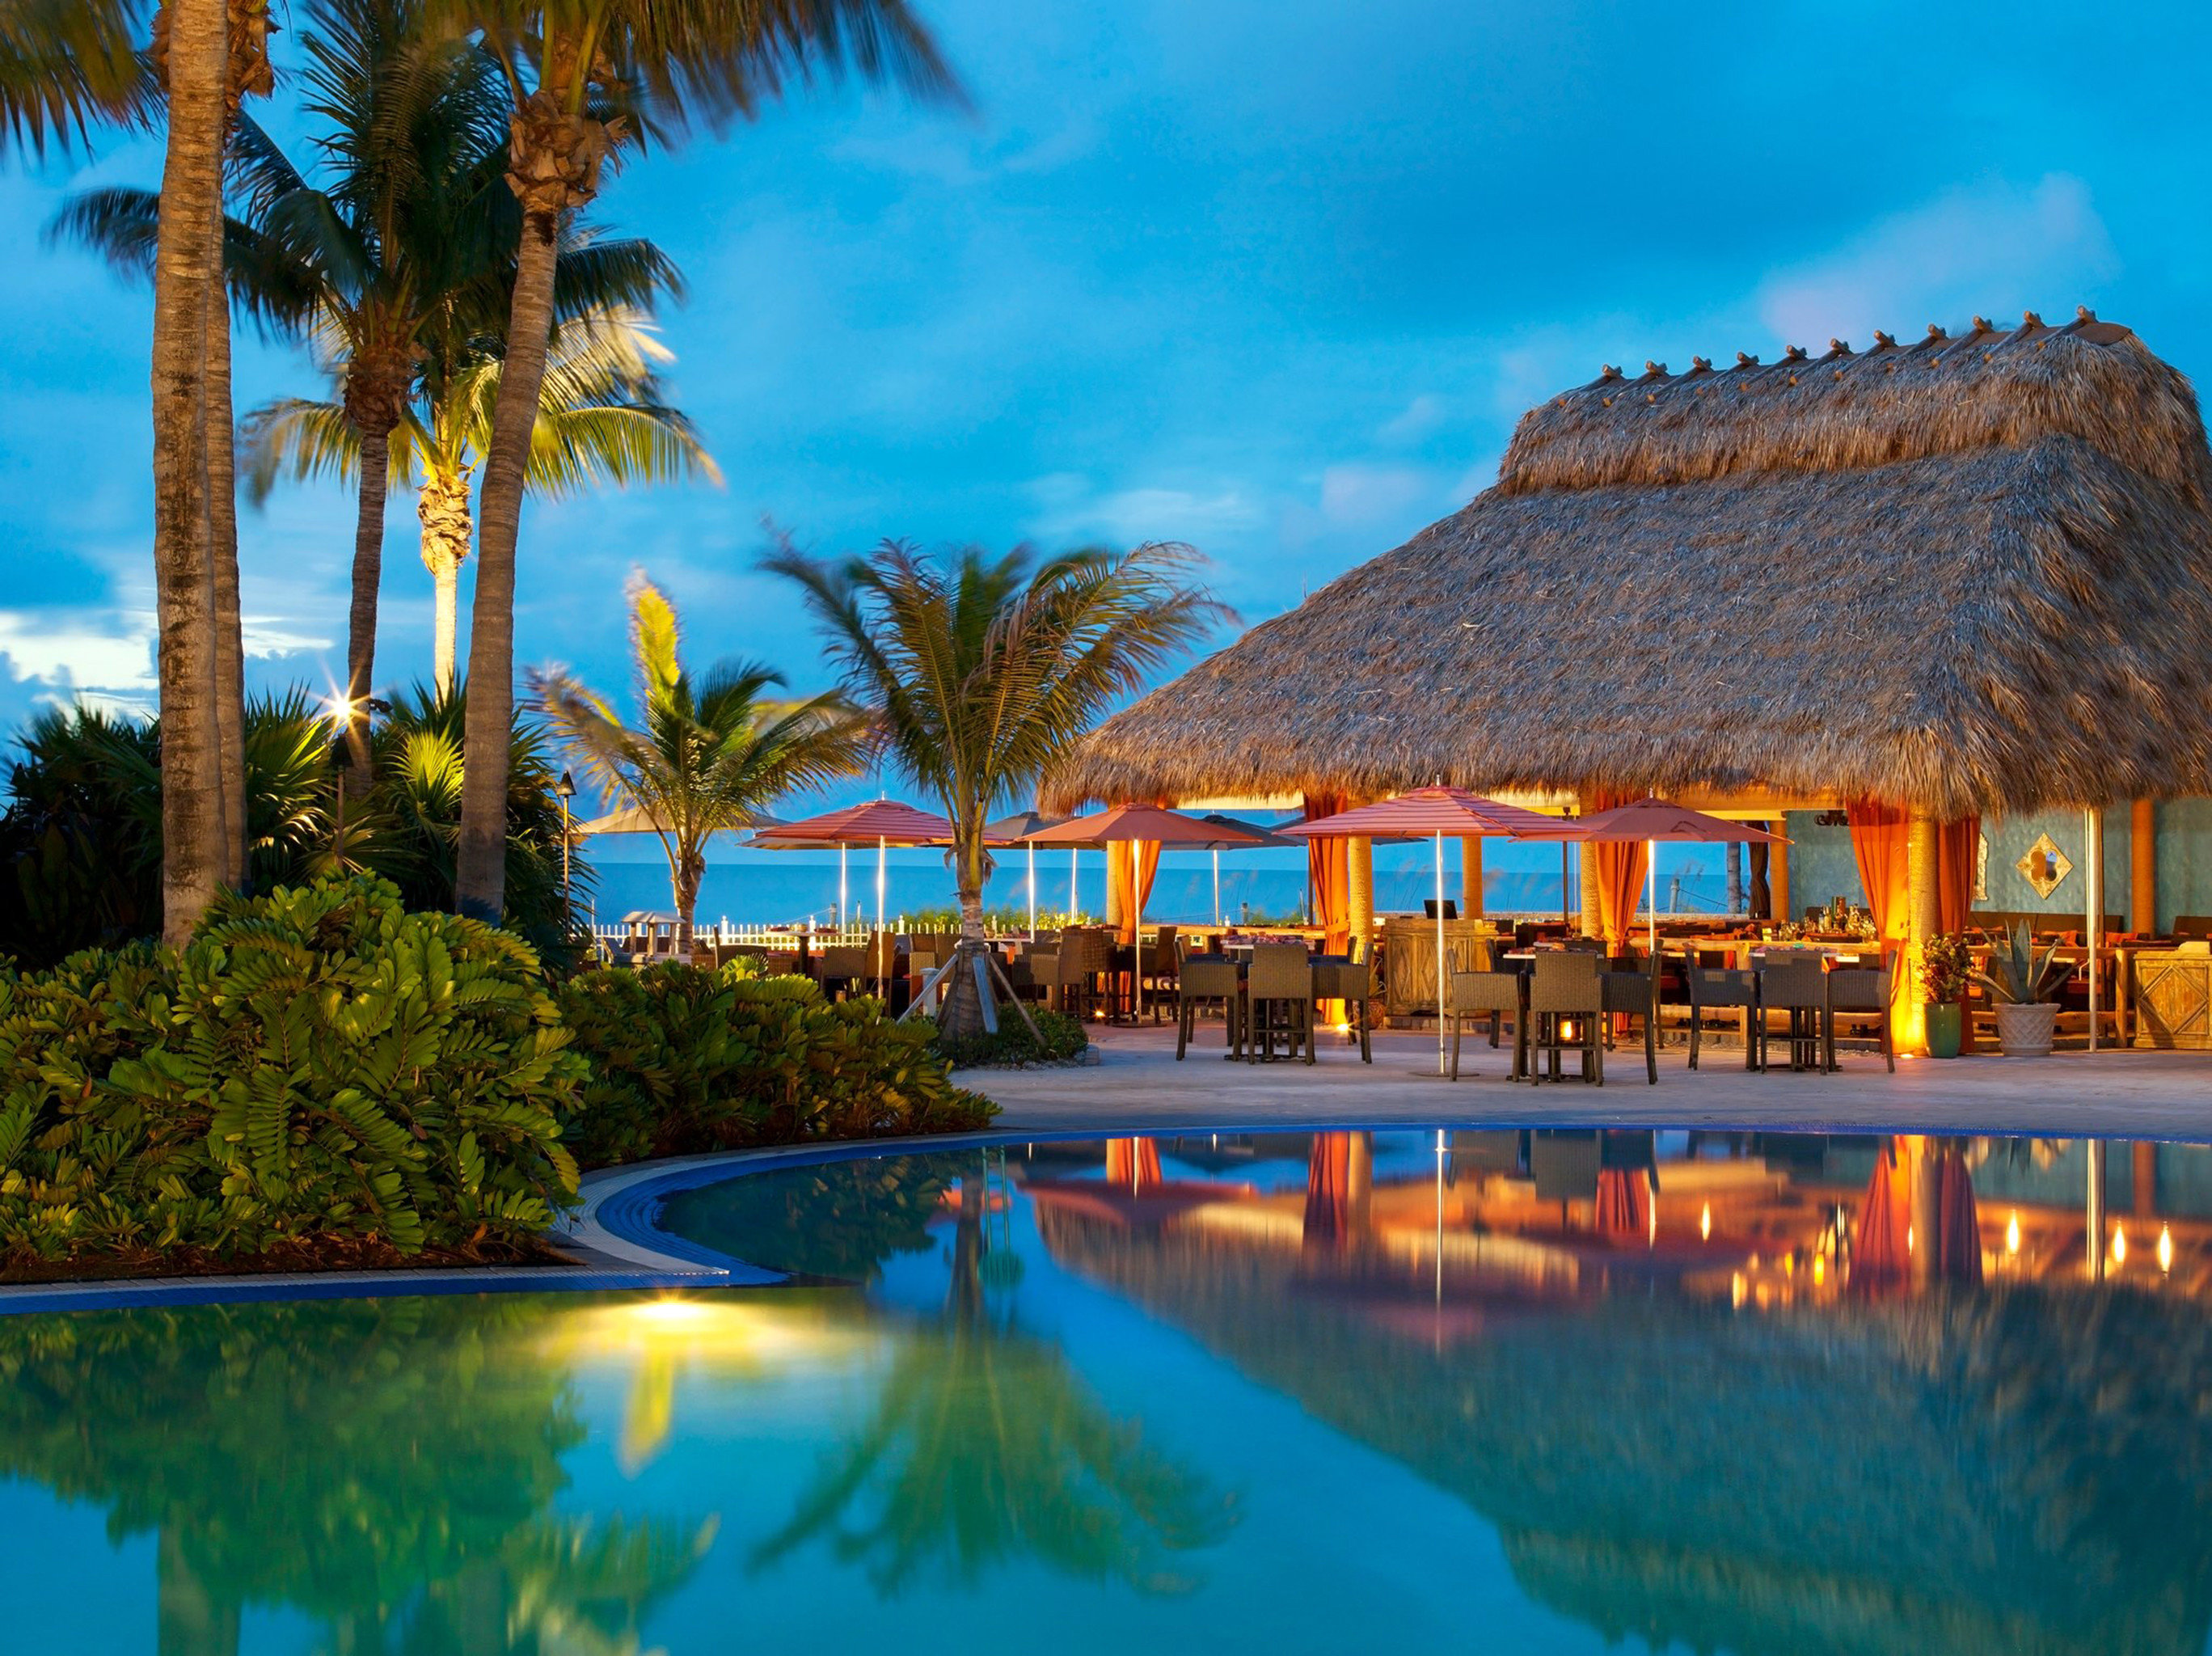 Lounge Luxury Modern Pool tree sky water swimming pool Resort palm arecales caribbean Beach Lagoon colorful Sea colored lined